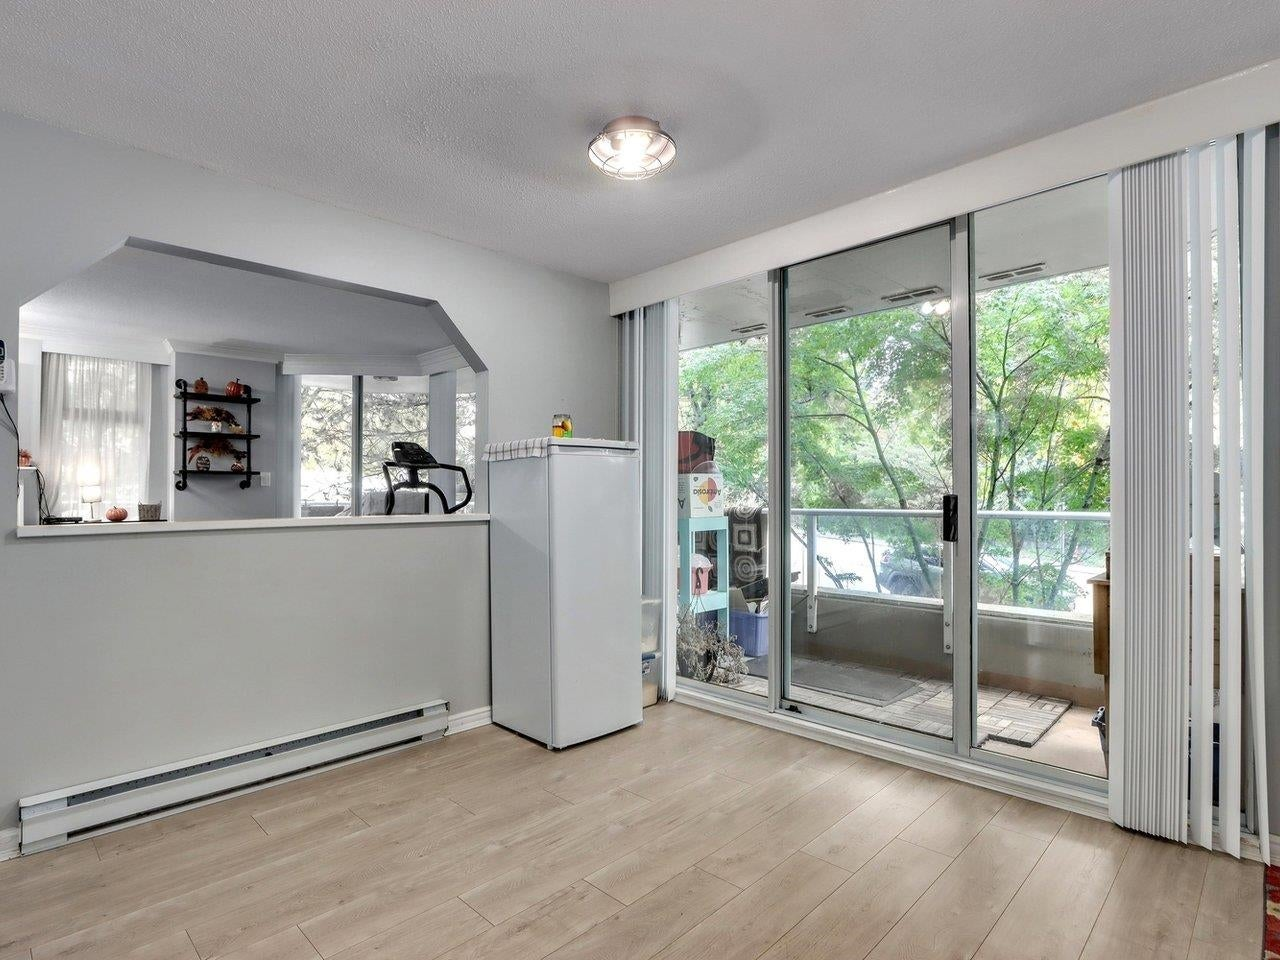 302 412 TWELFTH STREET - Uptown NW Apartment/Condo for sale, 2 Bedrooms (R2625659) - #9